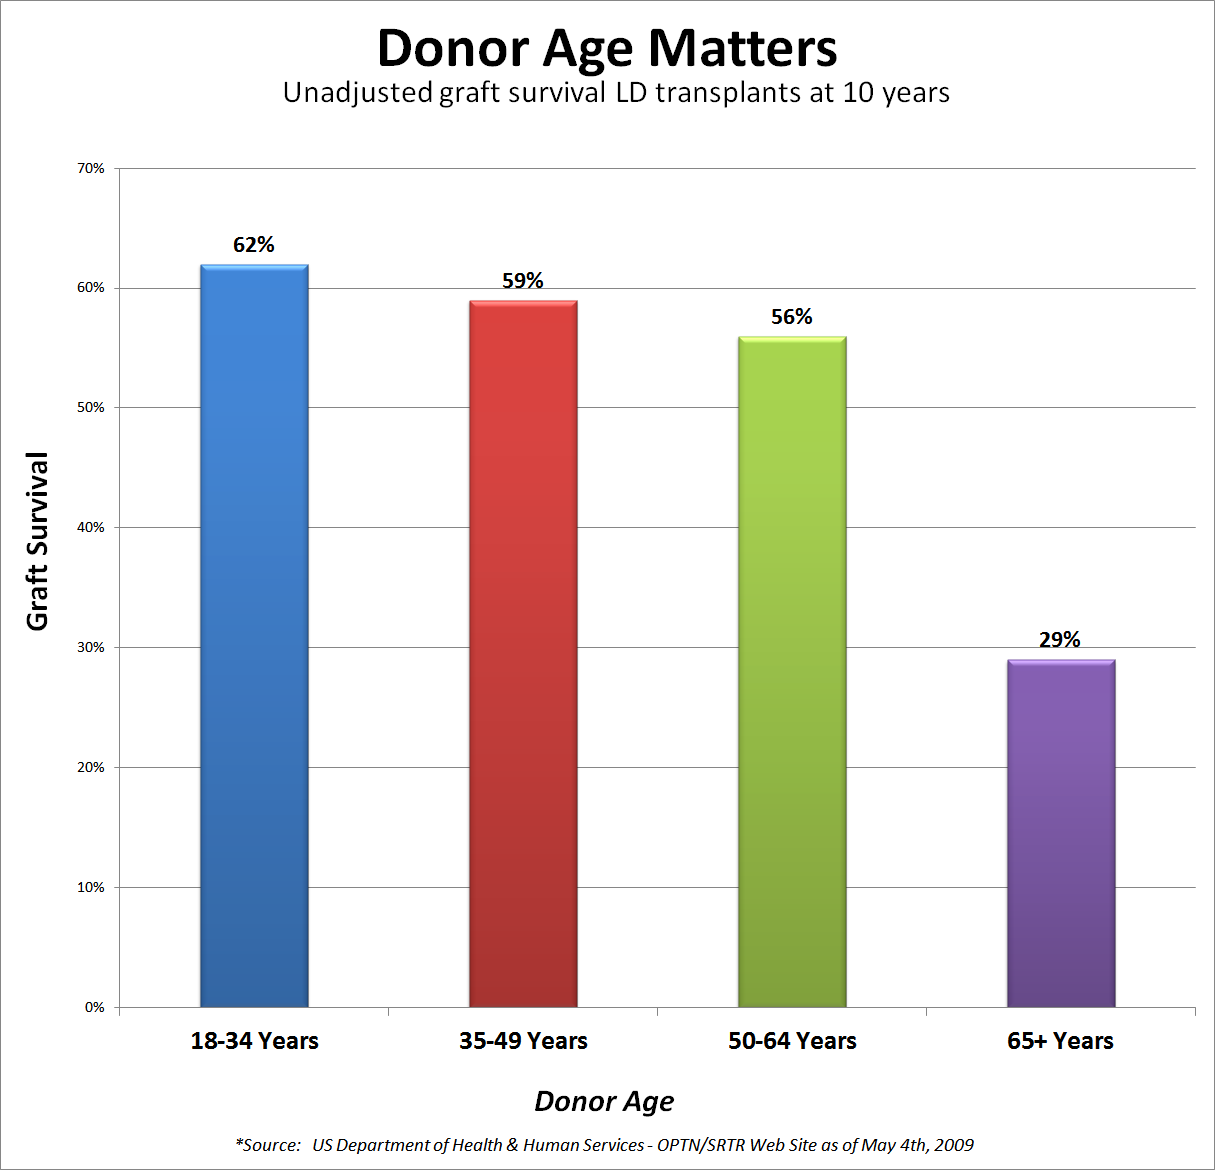 Donor Age Matters